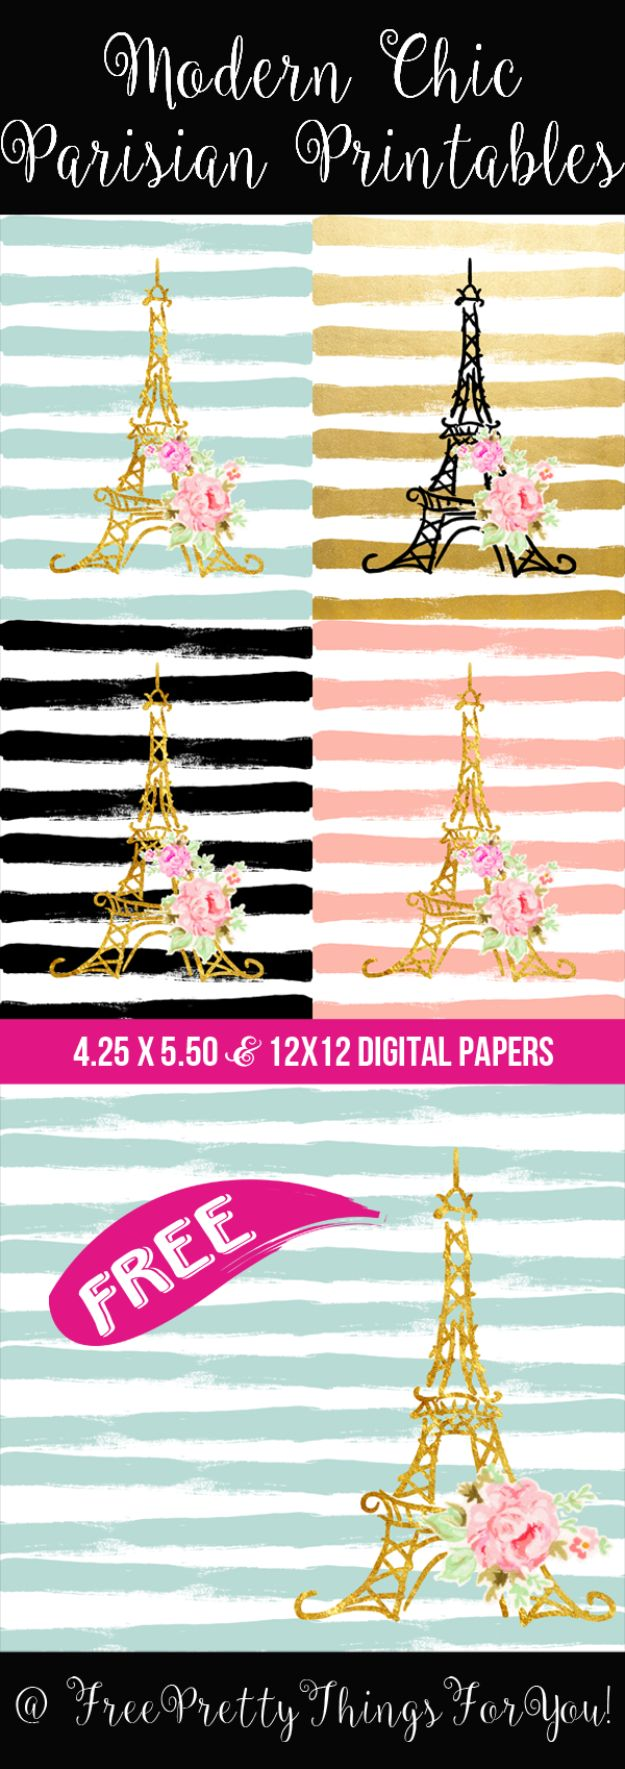 Free Printables For Your Walls - Modern Chic Parisian Printables - Easy Canvas Ideas With Free Downloadable Artwork and Quote Sayings - Best Free Prints for Wall Art and Picture to Print for Home and Bedroom Decor - Signs for the Home, Organization, Office - Quotes for Bedroom and Kitchens, Vintage Bathroom Pictures - Downloadable Printable for Kids - DIY and Crafts by DIY JOY #wallart #freeprintables #diyideas #diyart #walldecor #diyhomedecor #freeprintables